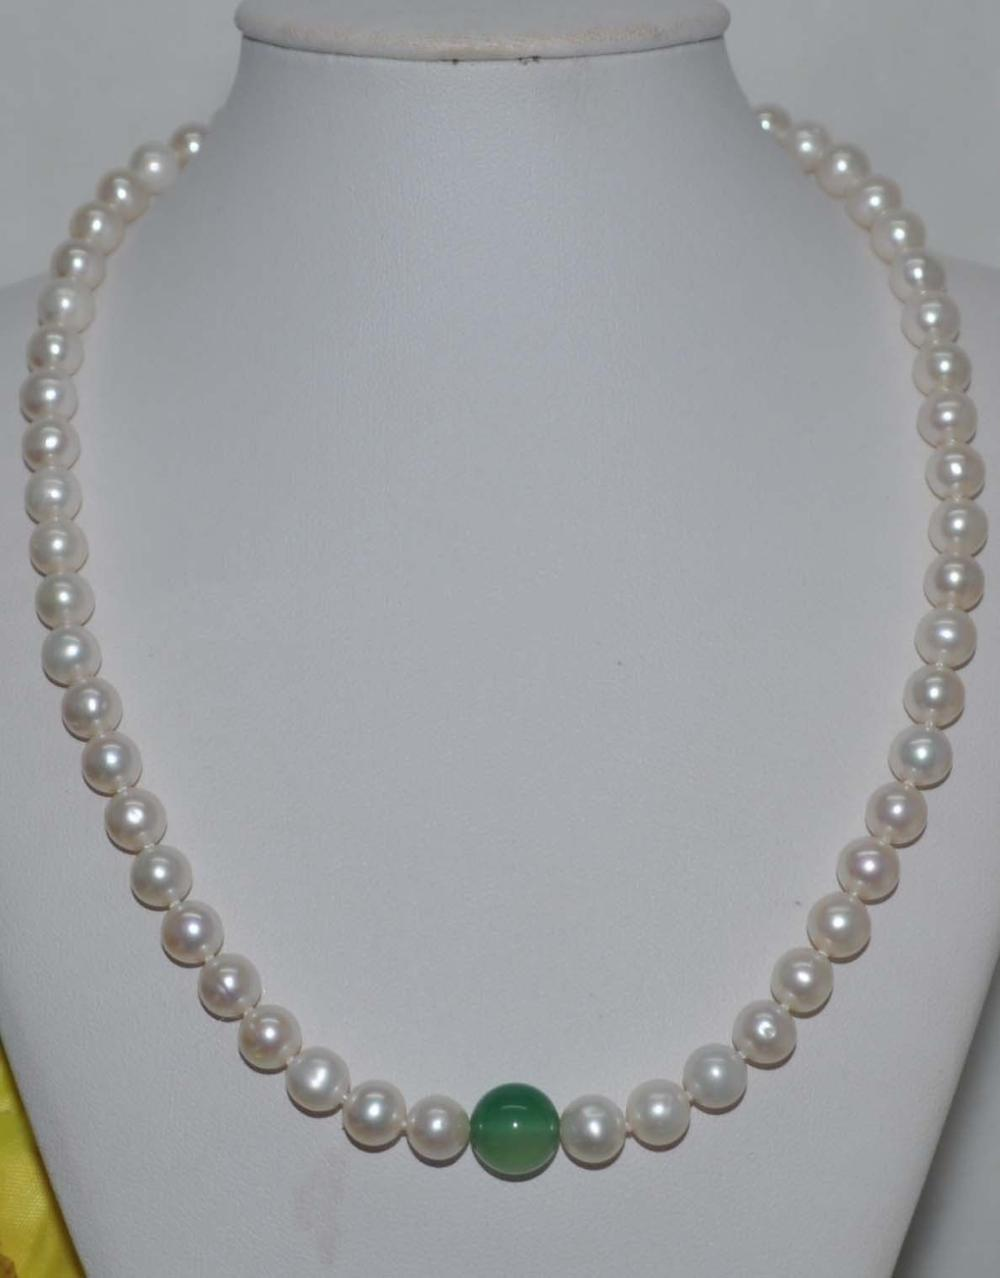 9-10mm Genuine White South Sea Green Jade Pearl Necklace 14k/20 Yellow Gold Clasp colloid mill grinder peanut butter maker machine sesame paste grinder nut butter making machine